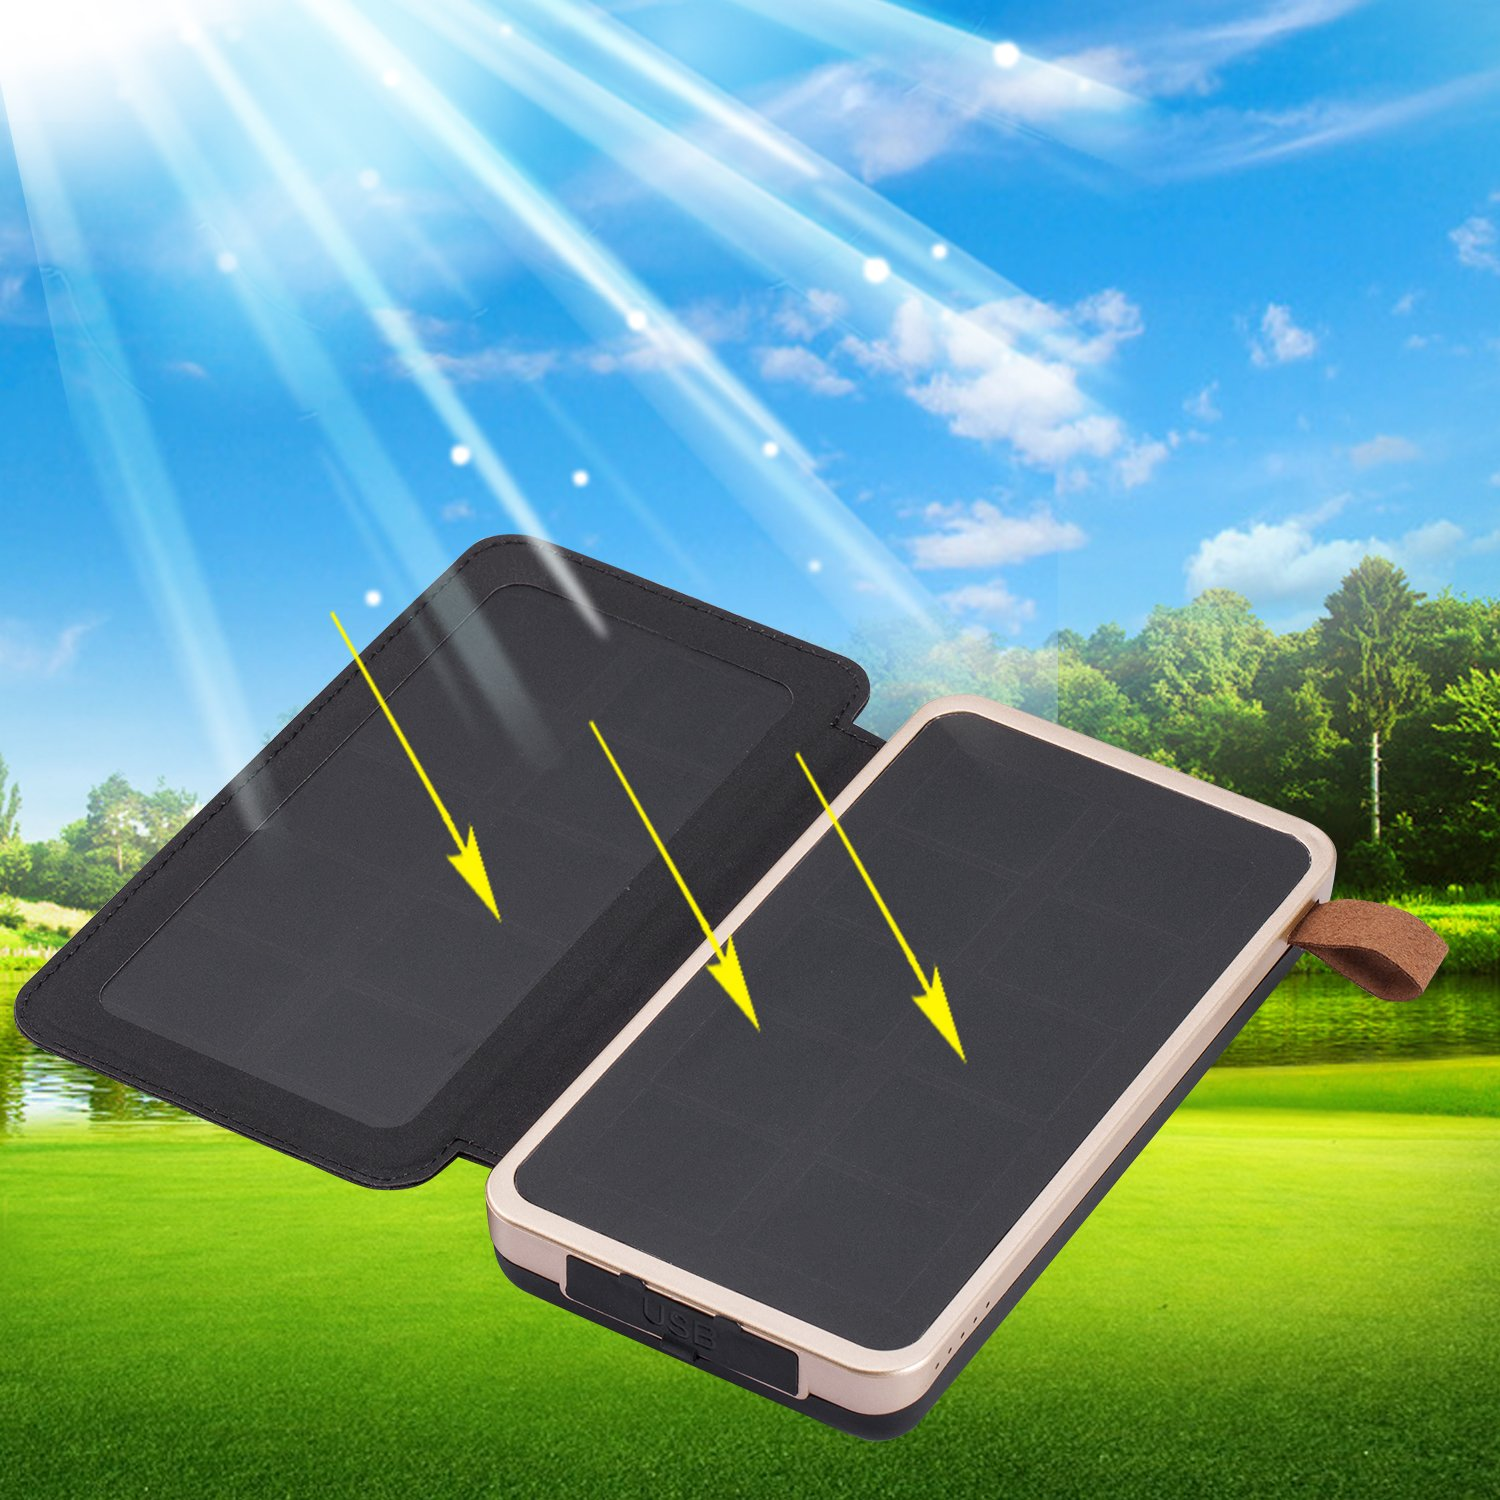 Aimshine PowerCore 24000mAh Solar Charger with Dual USB Ports, Upgraded Pairs of Solar Panels Power Bank for iPhone,SAMSUNG,ipad and Any Rechargeable Devices, A Necessity in Earthquake or Hurricane by Aimshine (Image #6)